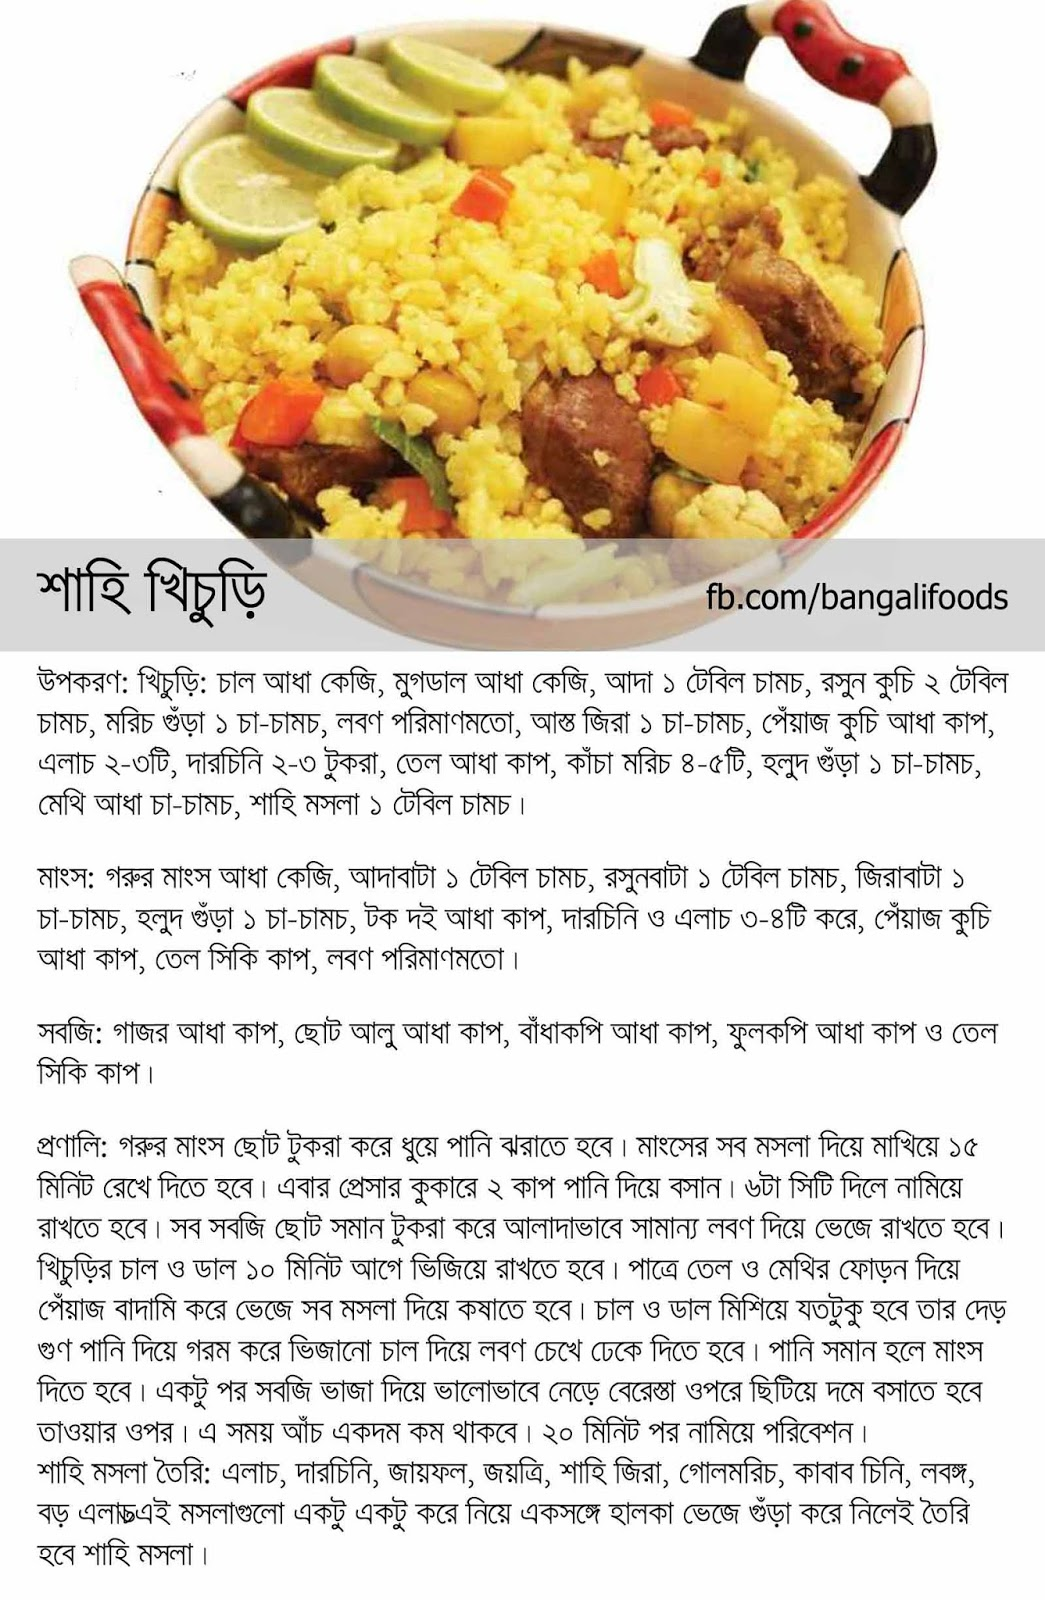 Bangali foods some khichuri recipes in bangla shahi khichuri forumfinder Gallery